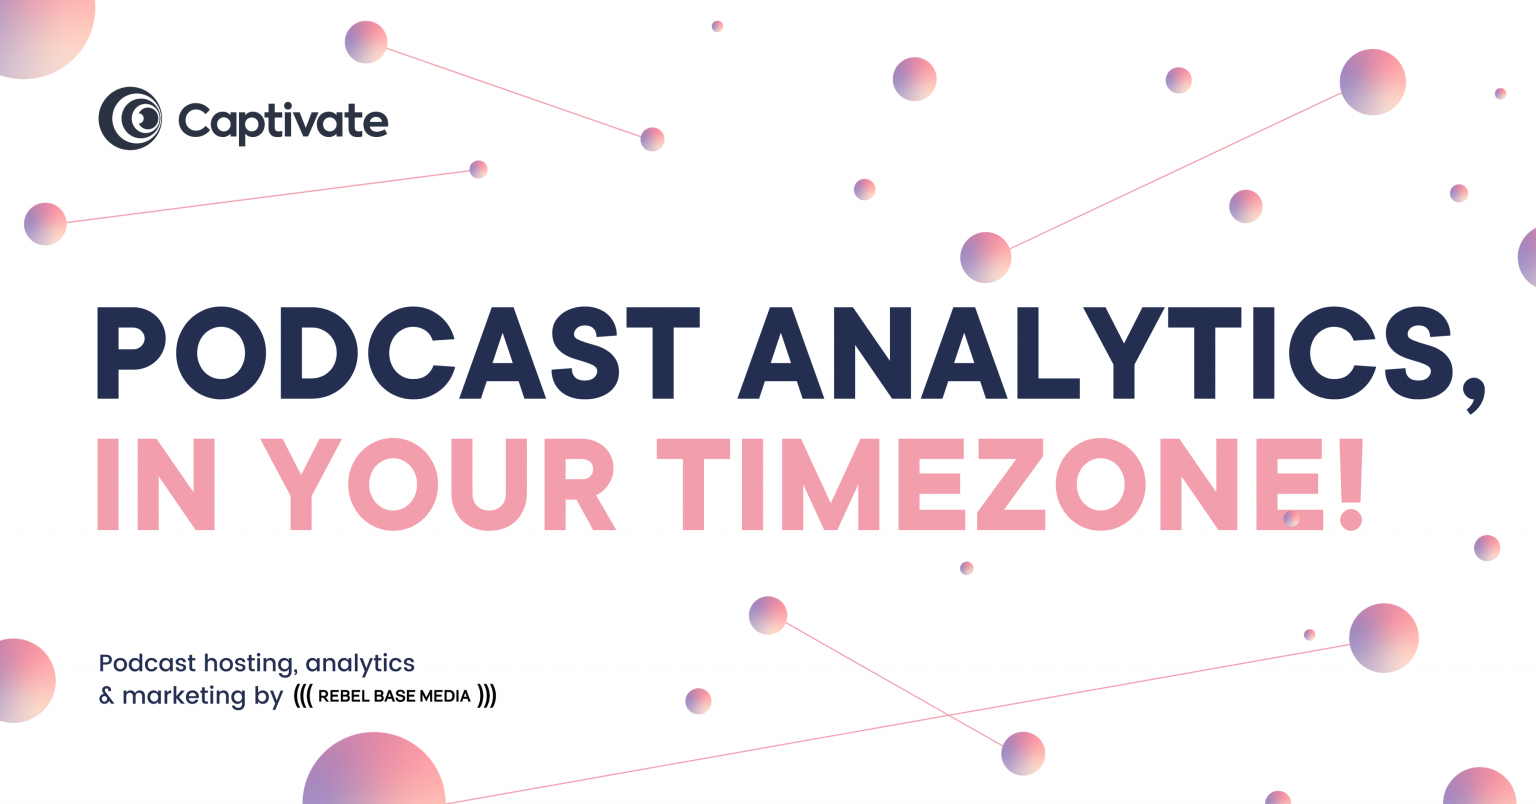 Captivate podcast hosting analytics in timezones